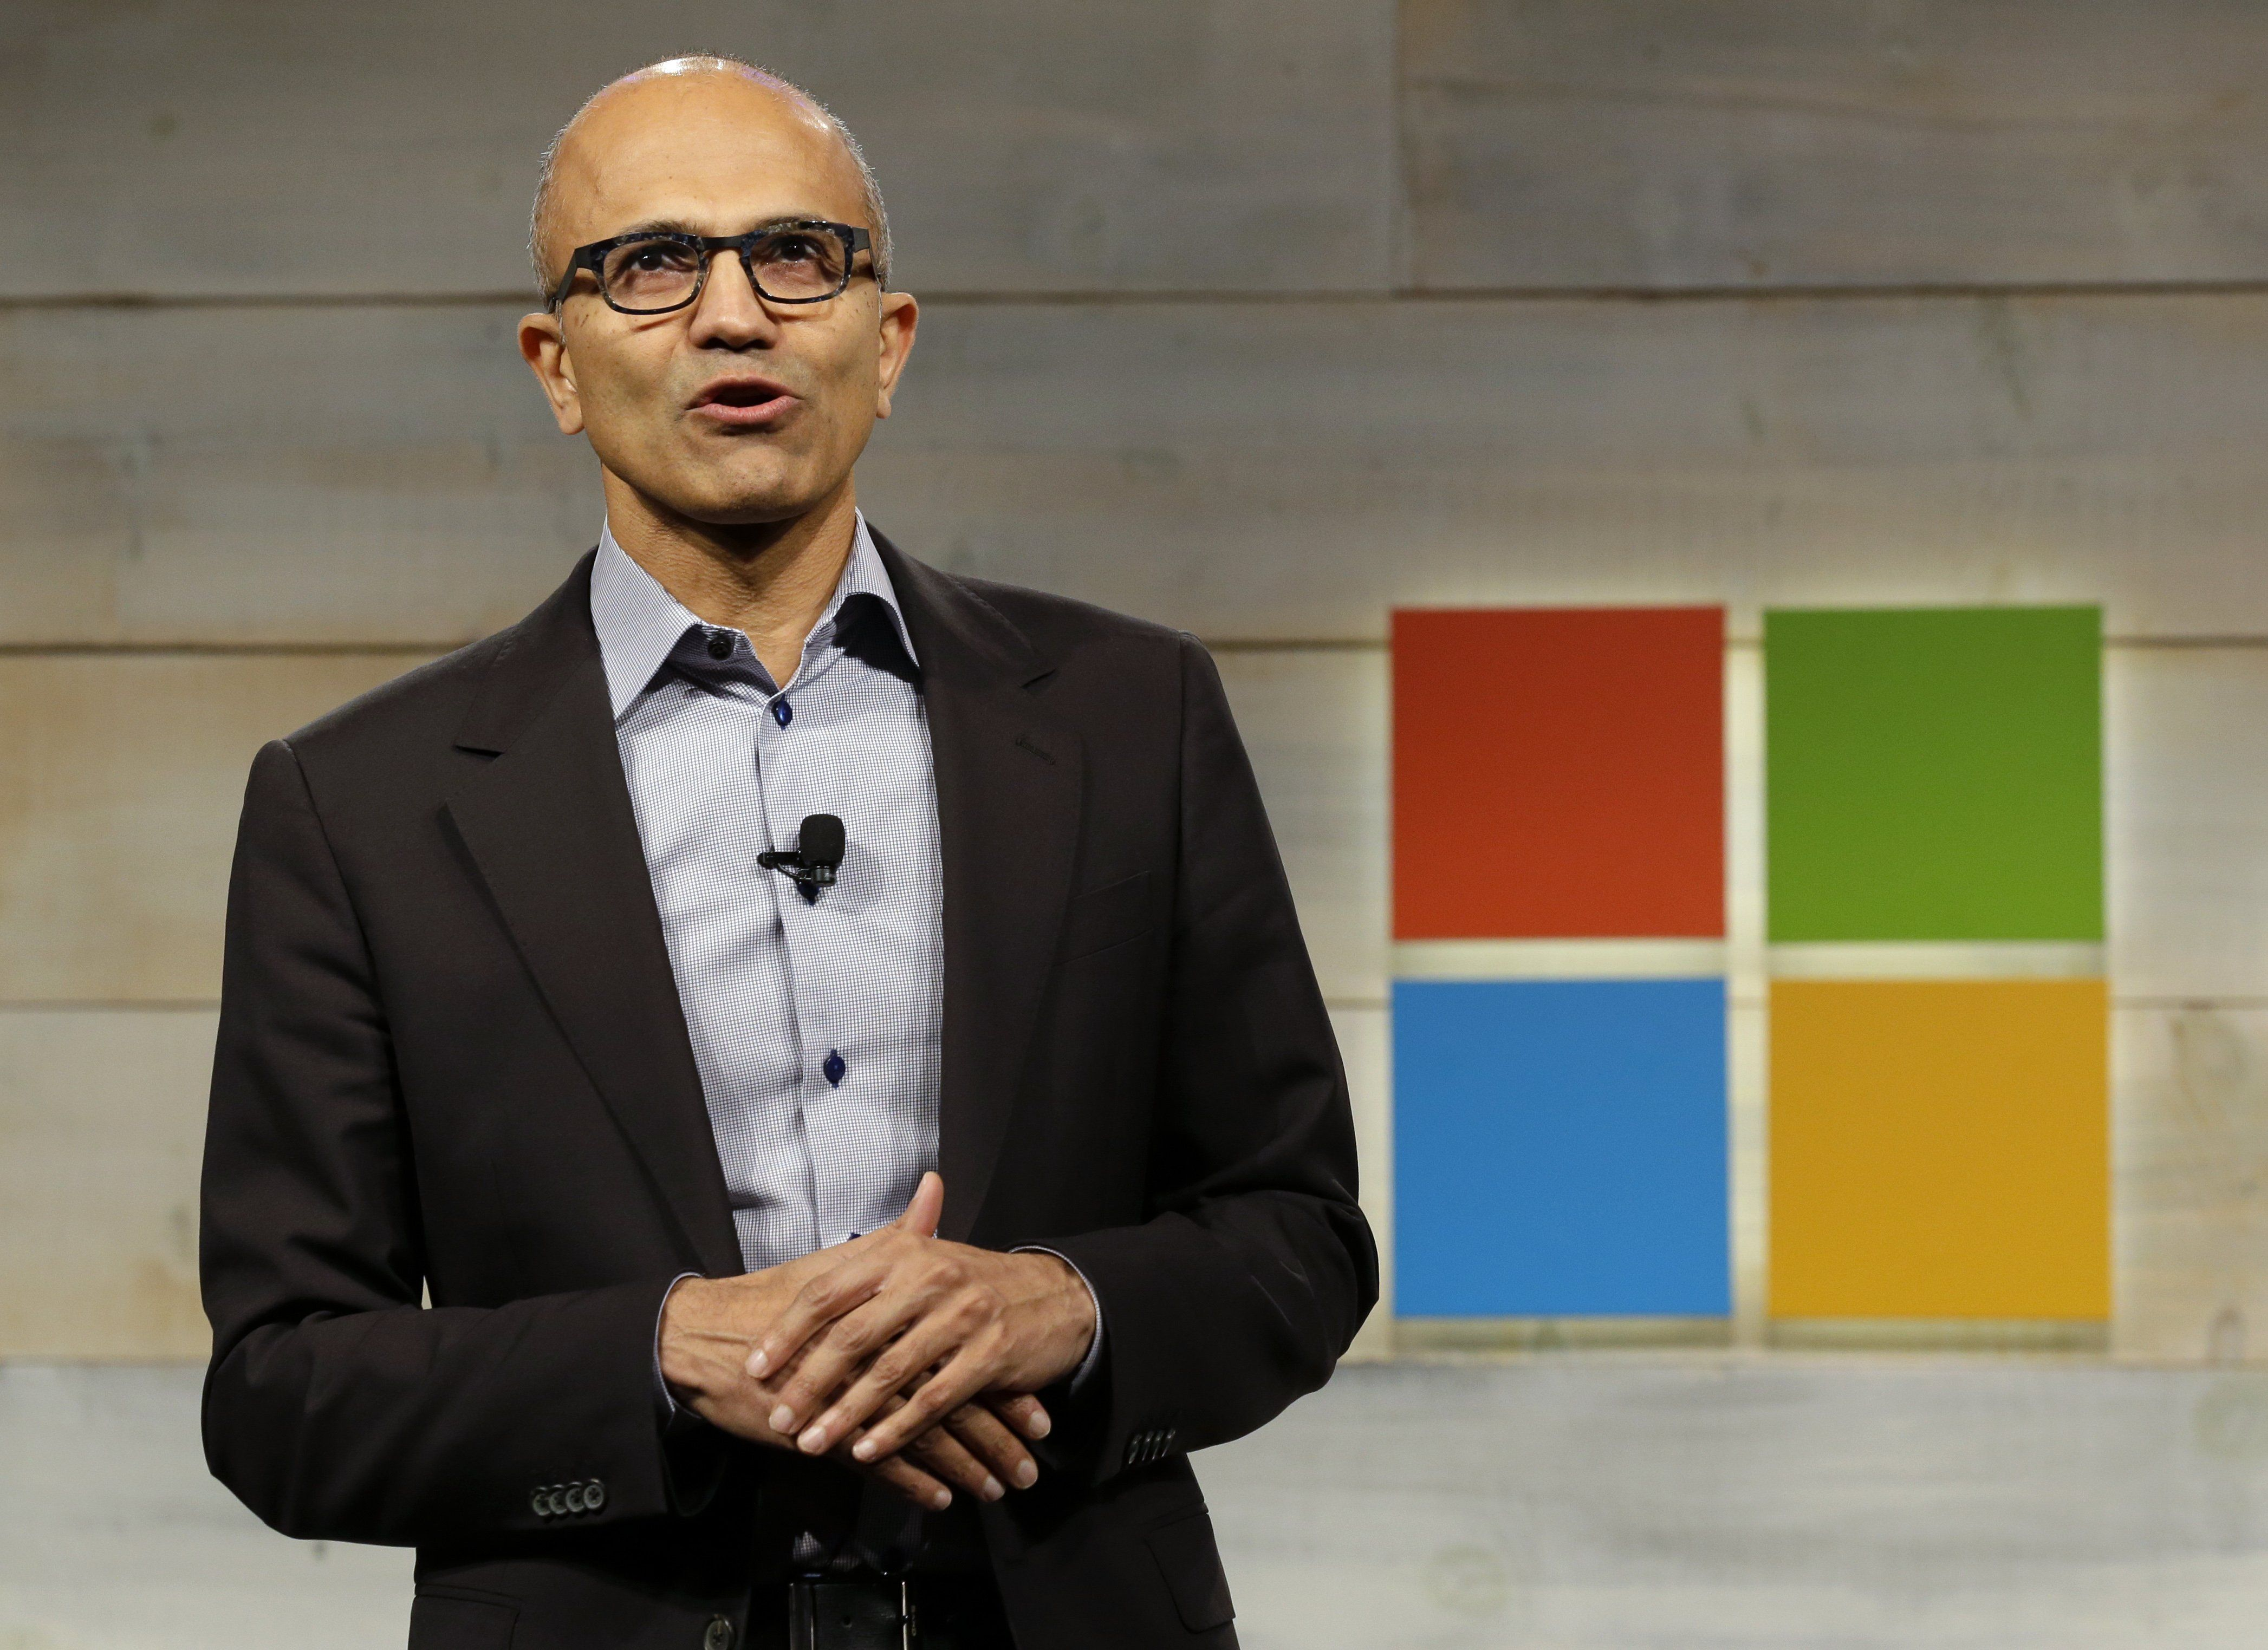 Microsoft's CEO shared a surprising motive for Windows phones coolest feature (MSFT)